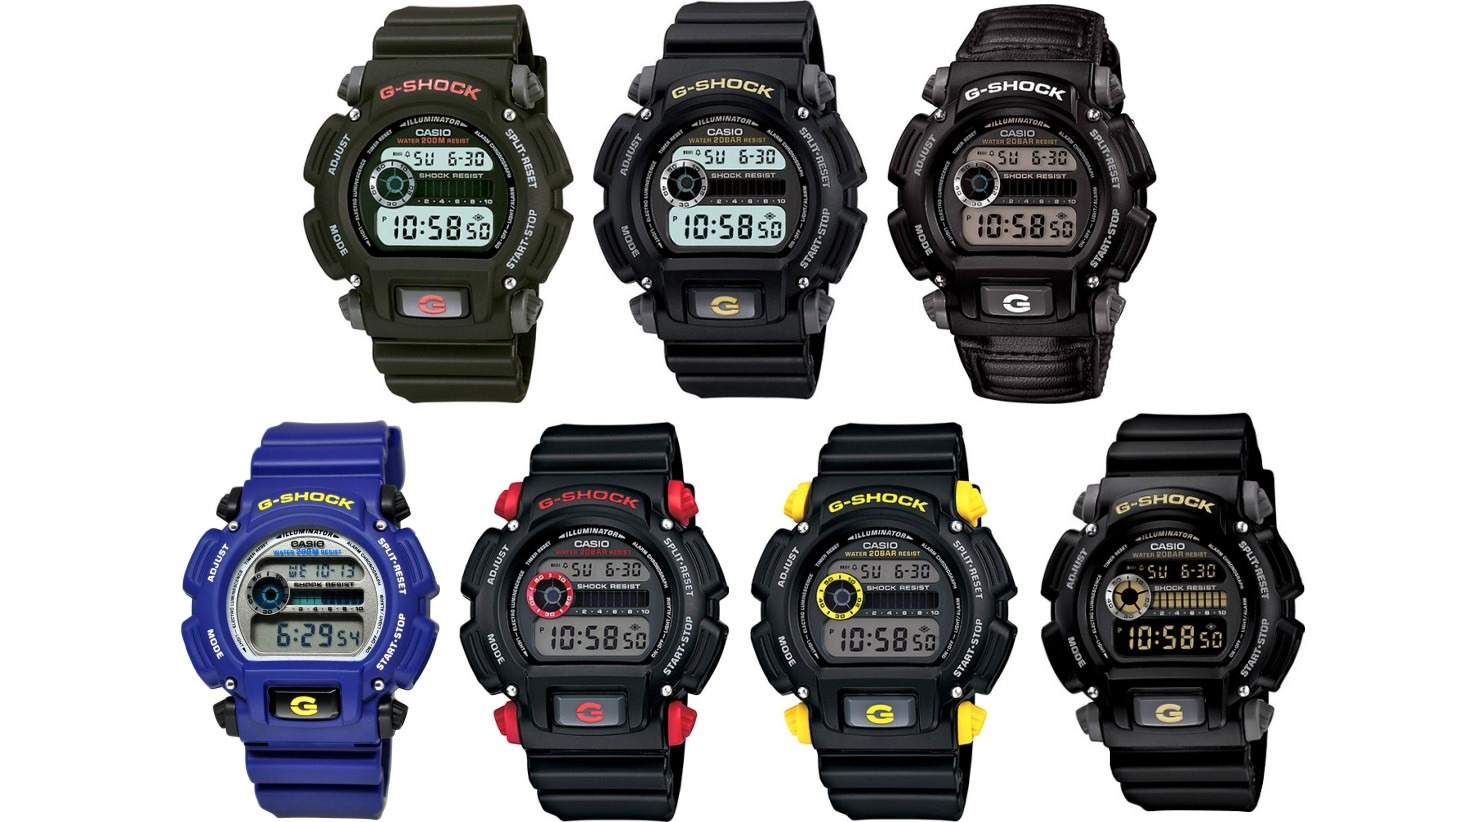 Casio G-SHOCK DW-9052V-1CR review and thoughts 214b18f0d47